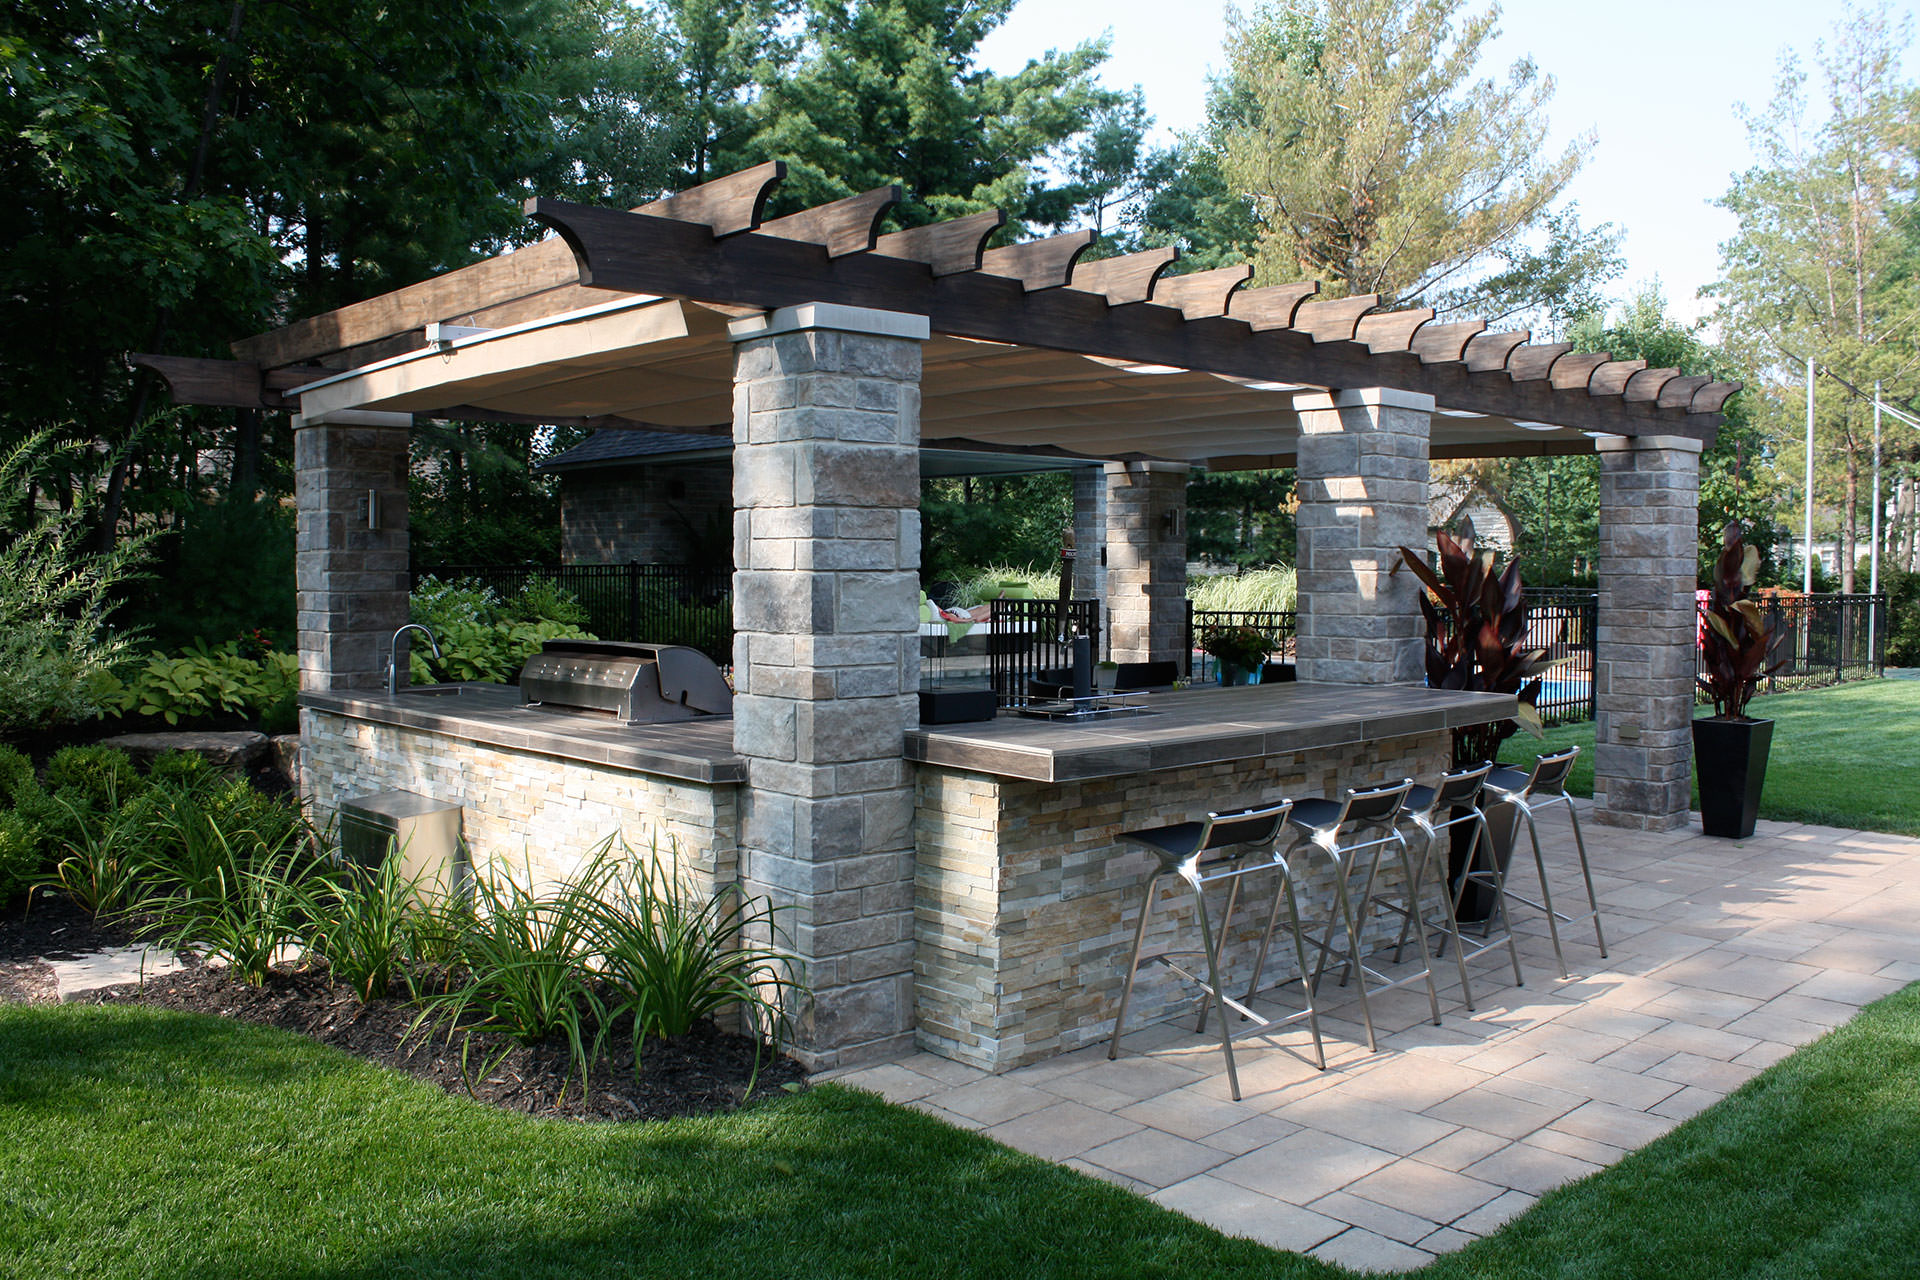 Retractable Outdoor Kitchen Cover In Terrebonne | ShadeFX Canopies